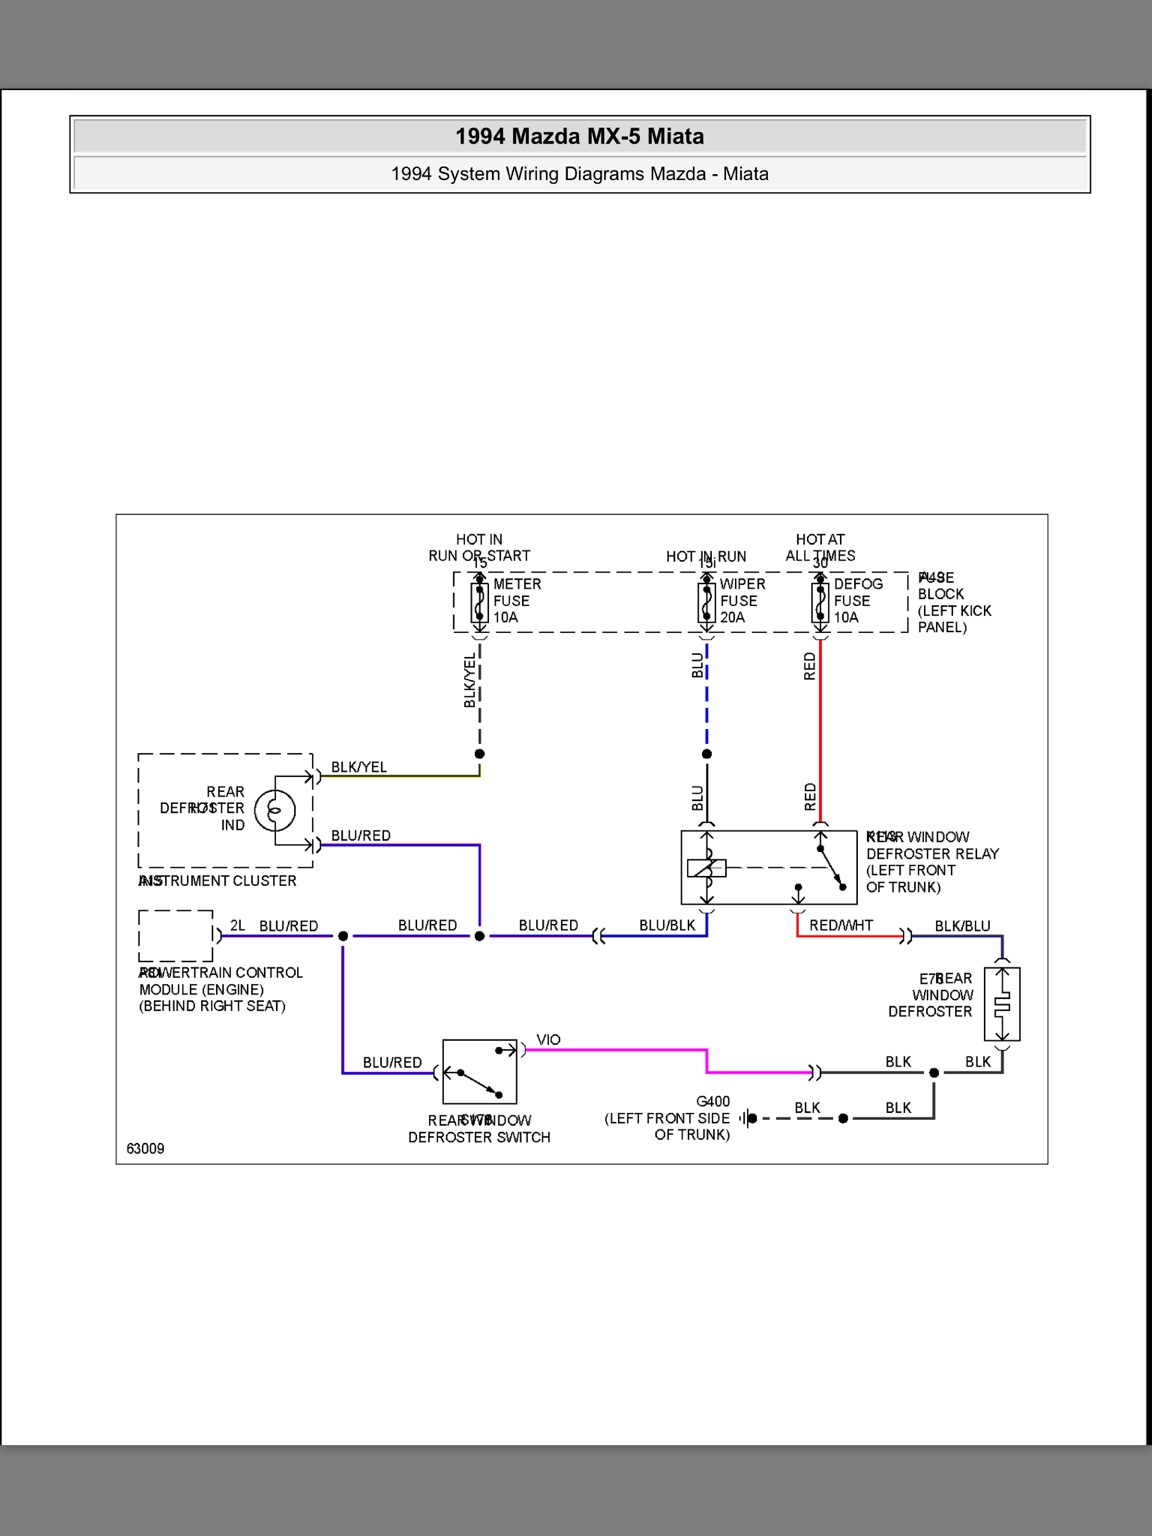 99 Miata Wiring Diagram Guide And Troubleshooting Of 2001 Mazda Na A 90 Car With Defroster From Scratch Mx 5 Forum Rh Net 1991